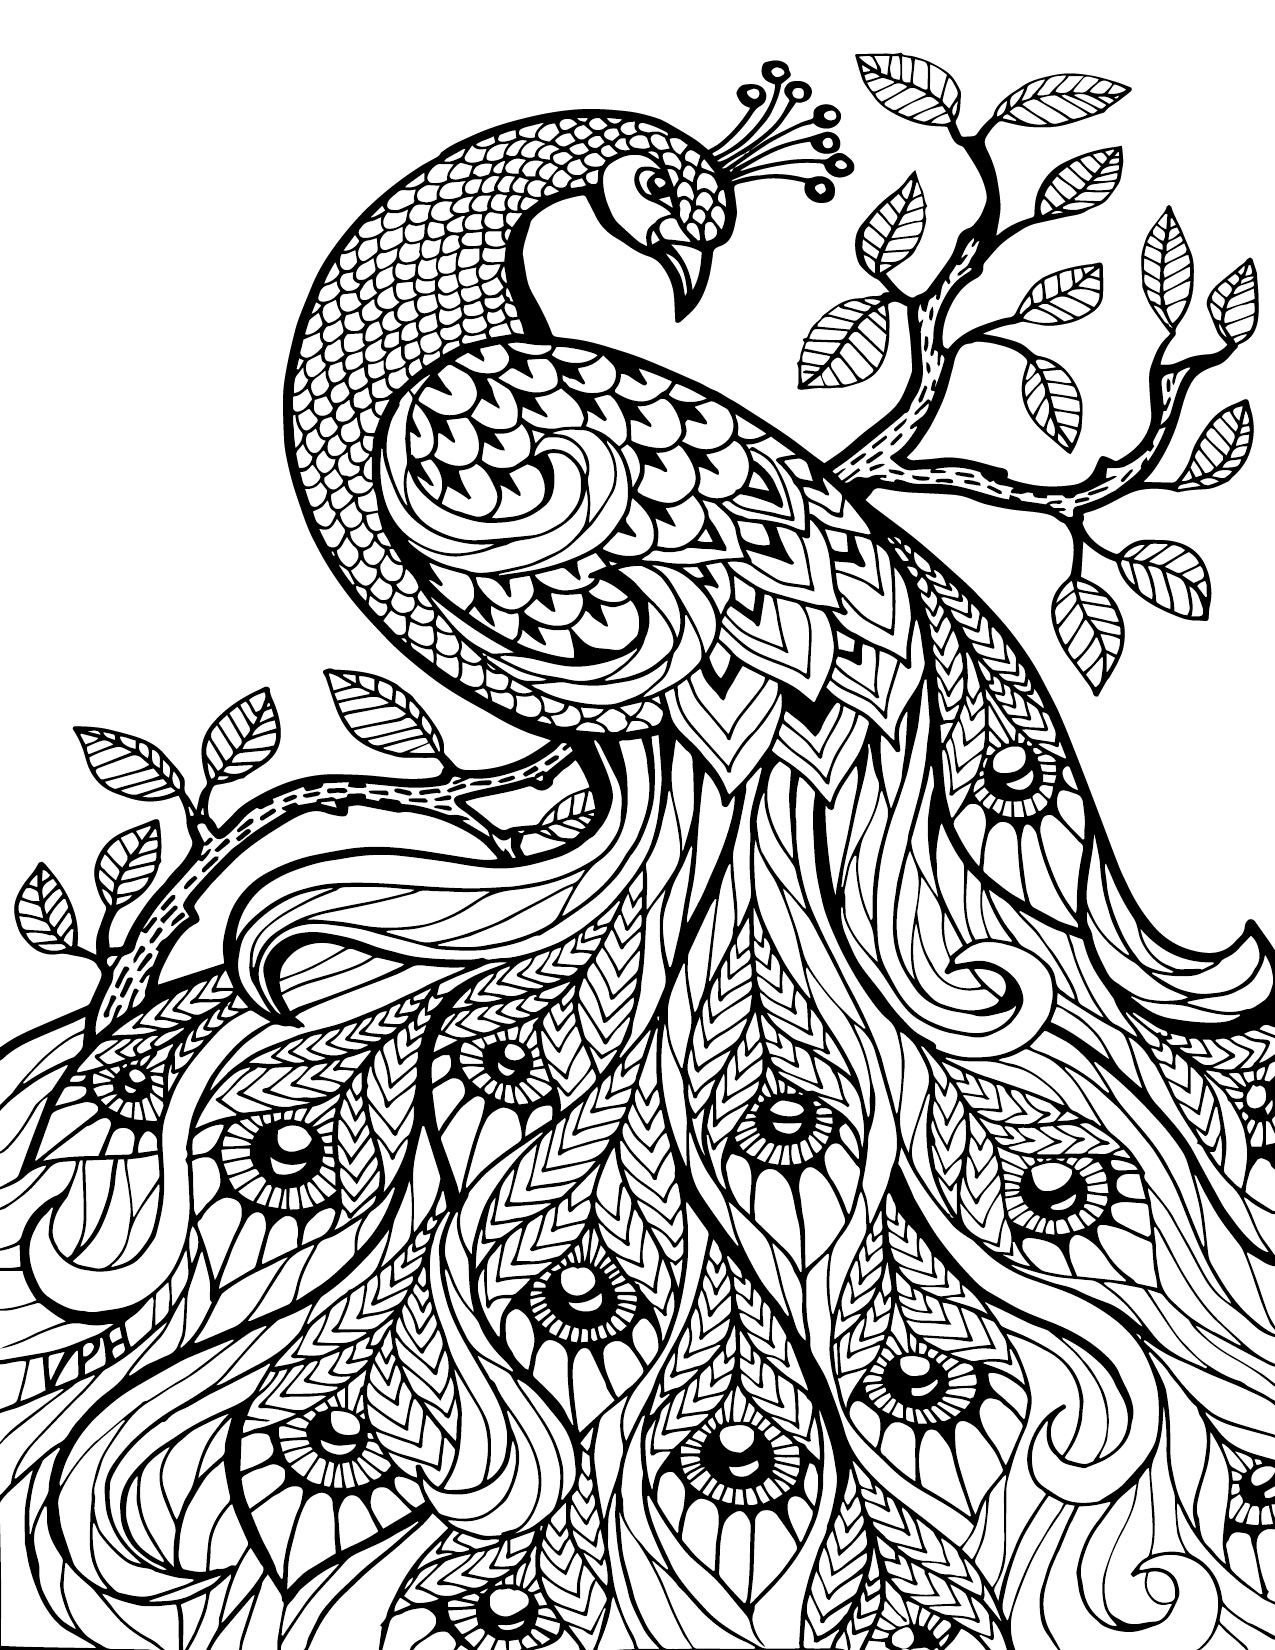 Coloring Pages Pdf : Free download adult coloring pages